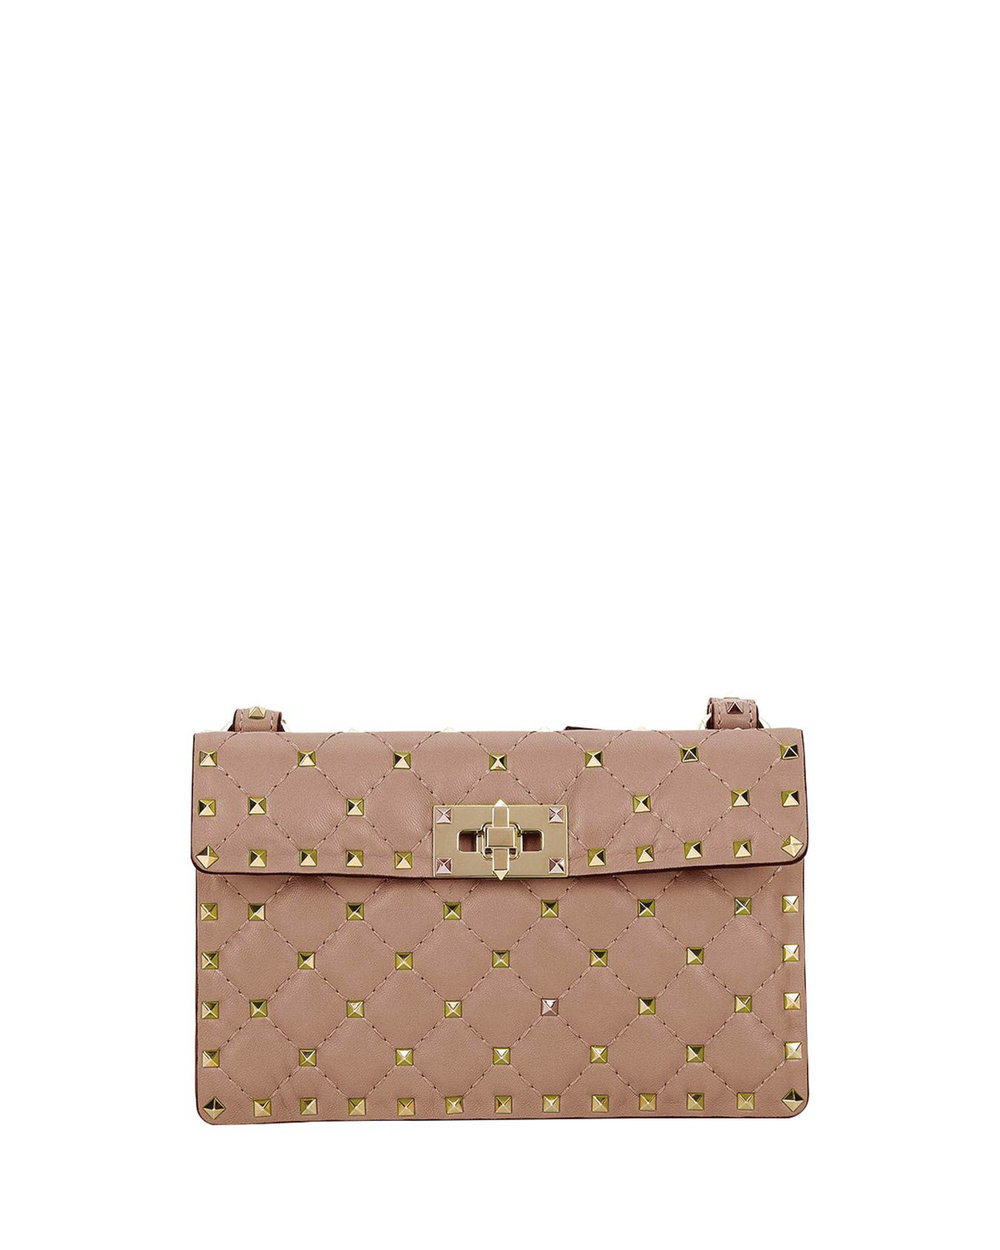 Valentino Garavani Rockstud Spike Medium Bag